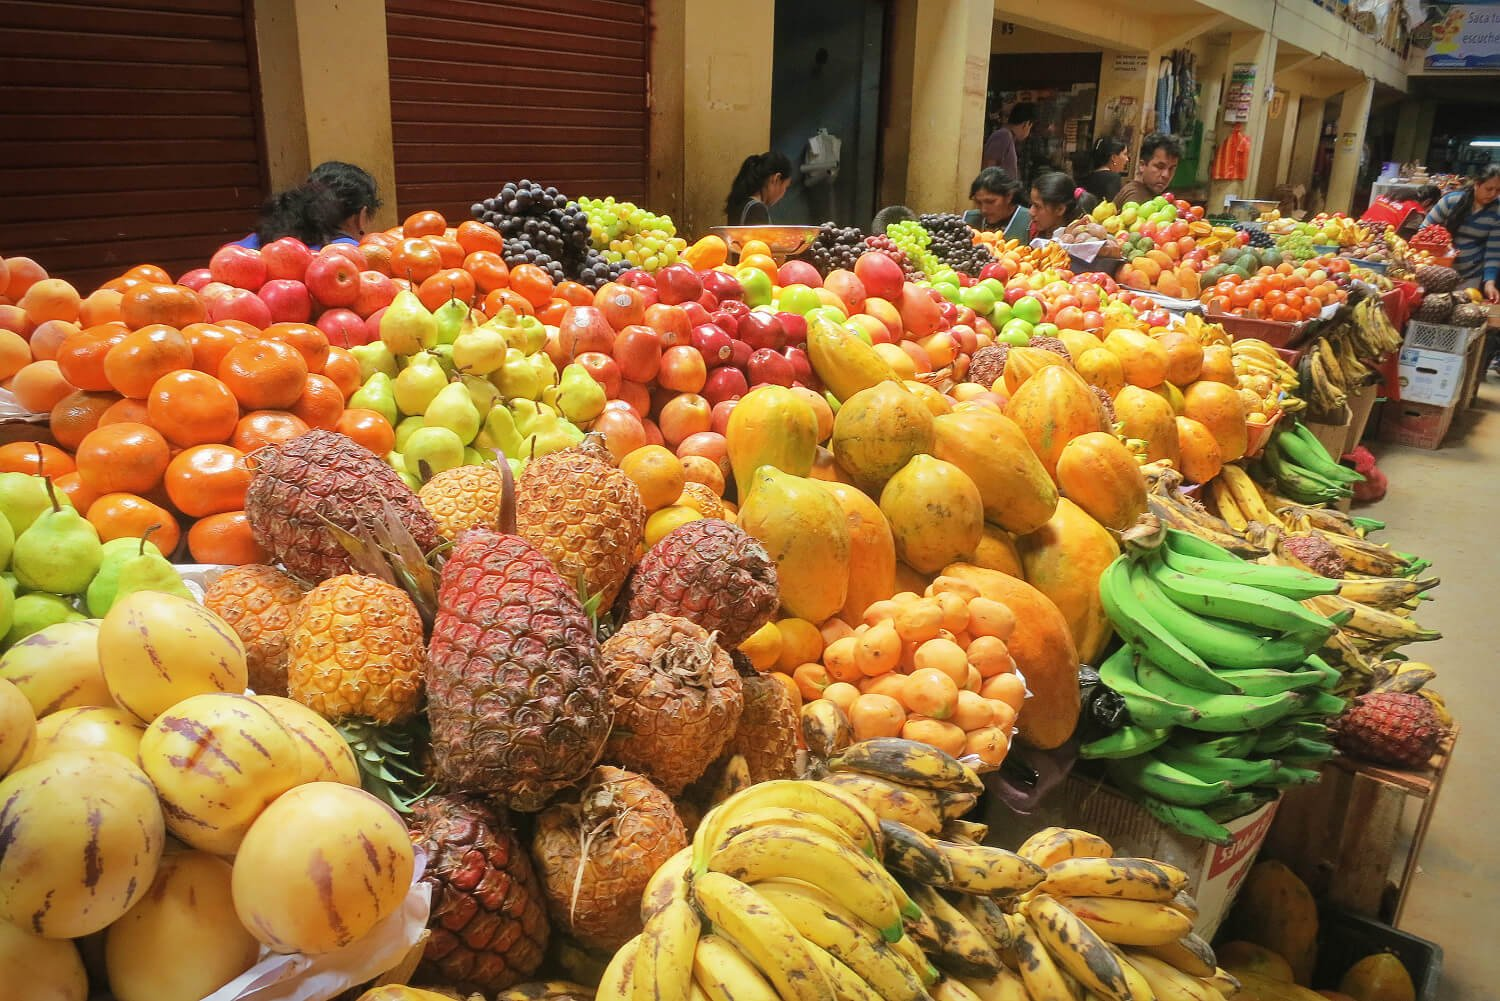 Mercado in Chachapoyas, Peru full of delicious fresh fruit.